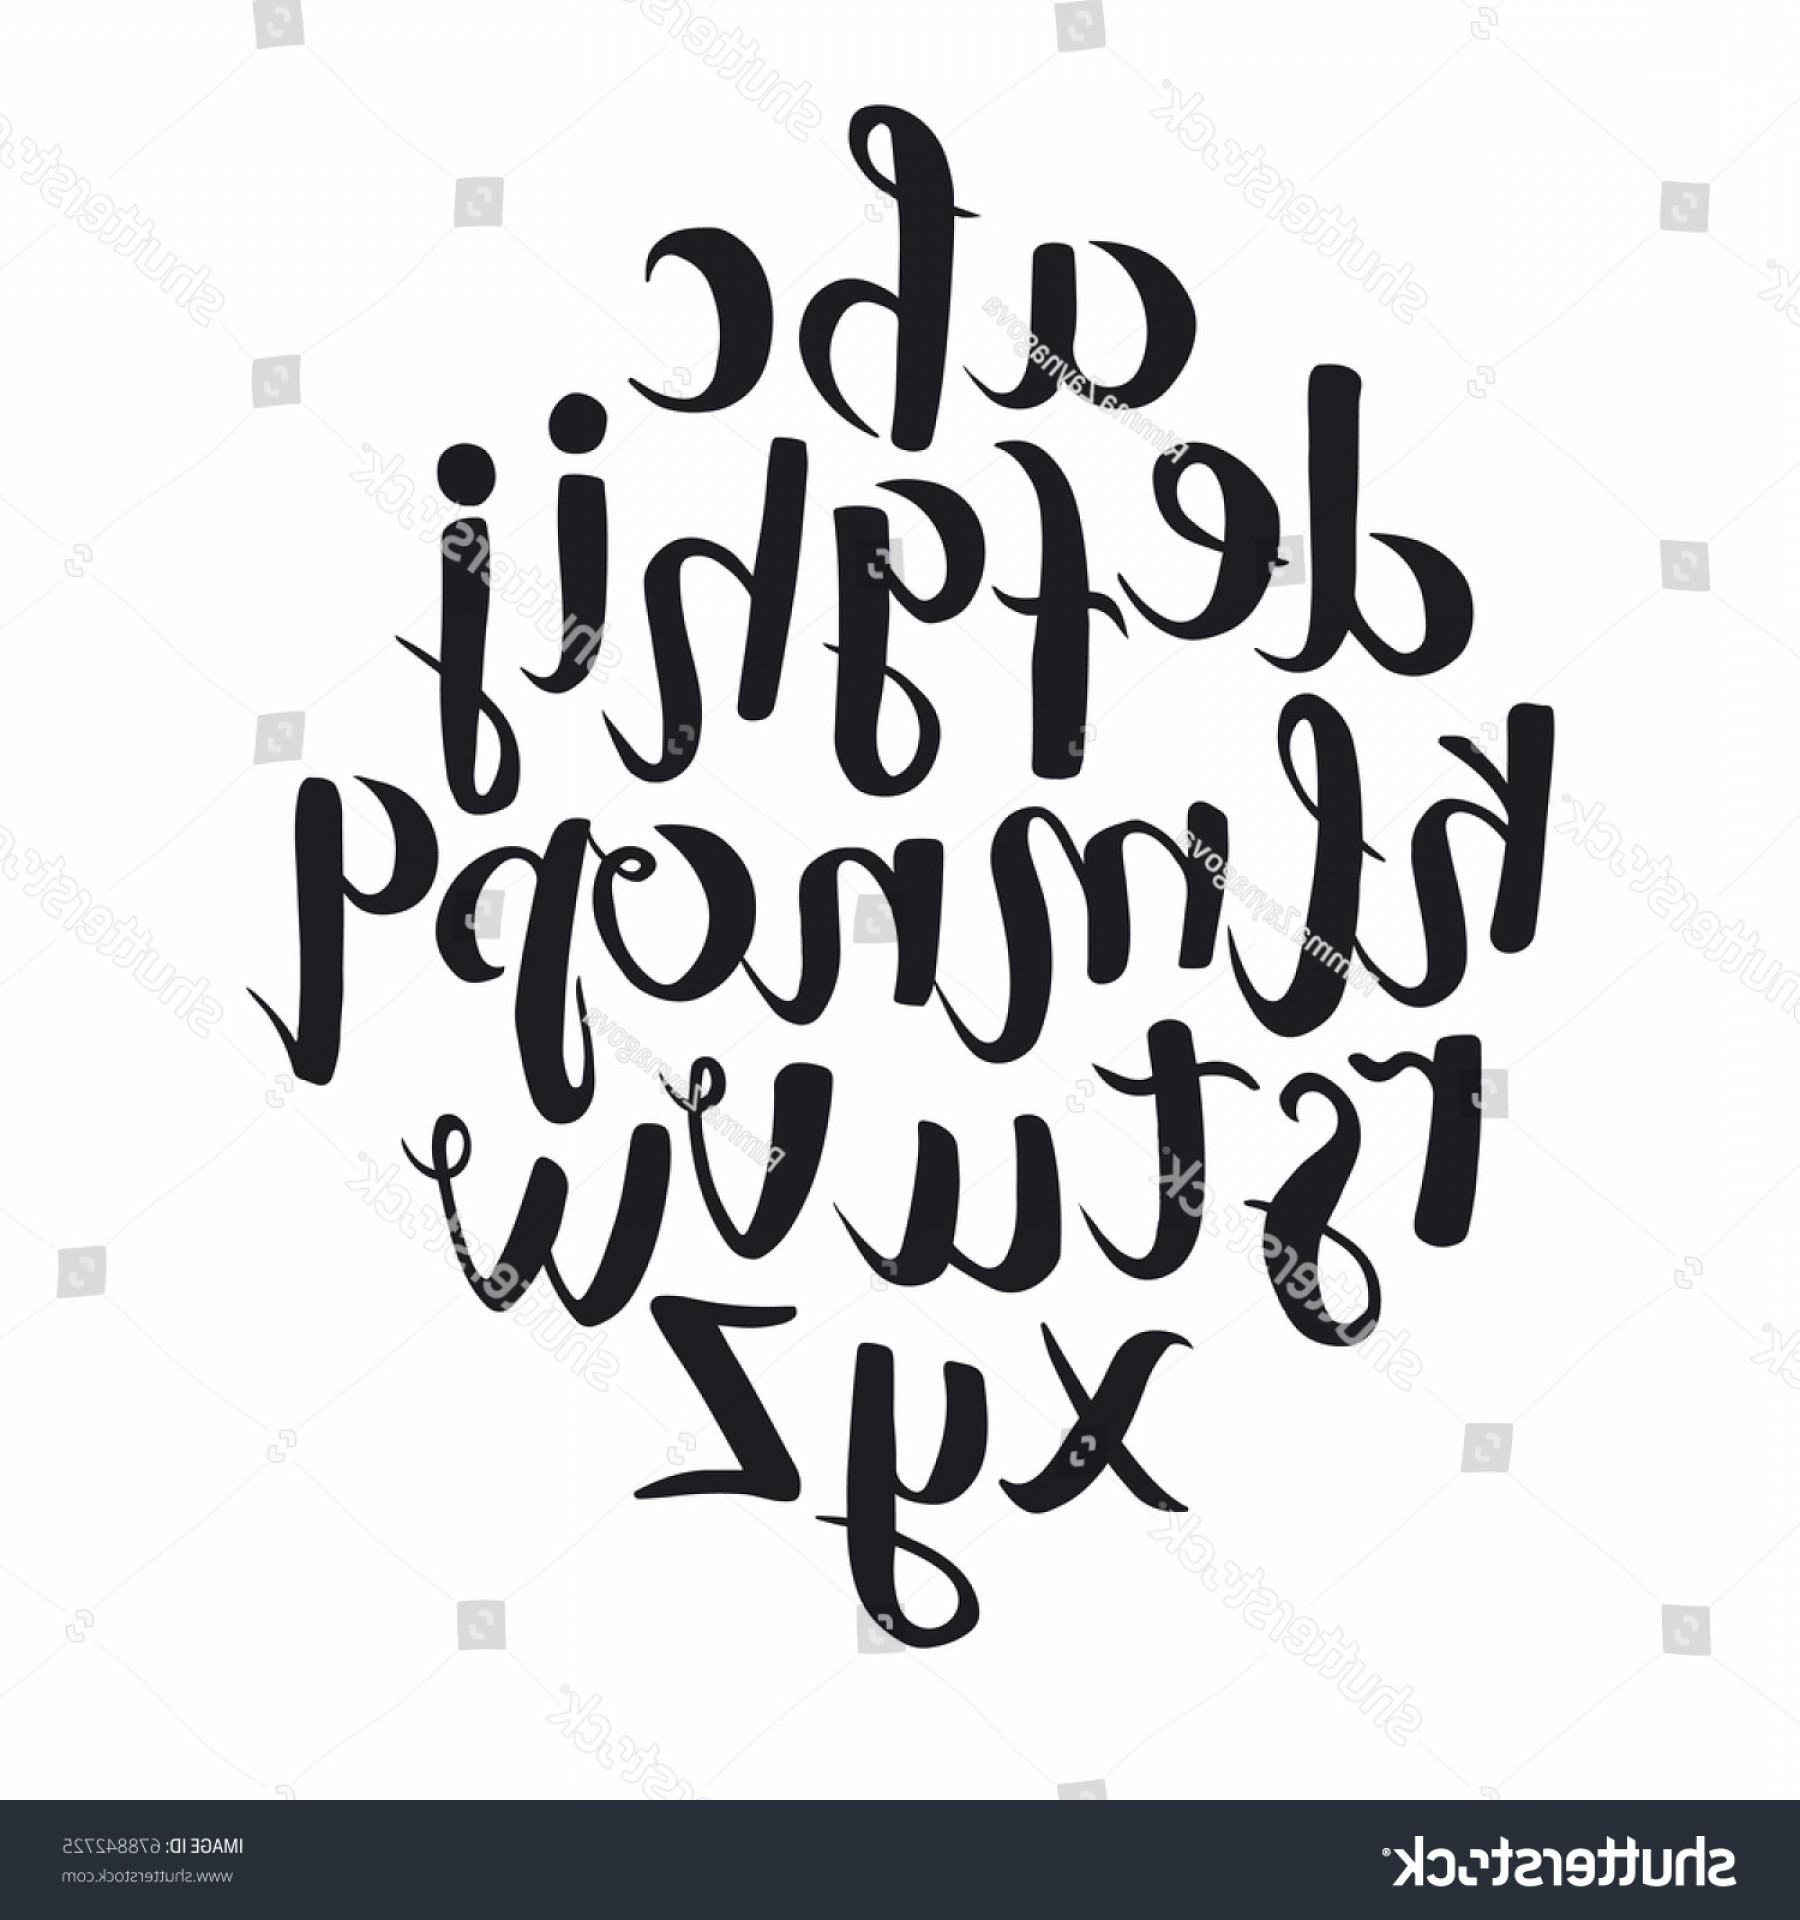 ABC News Logo Vector: Calligraphic Vector Font Hand Drawn Modern